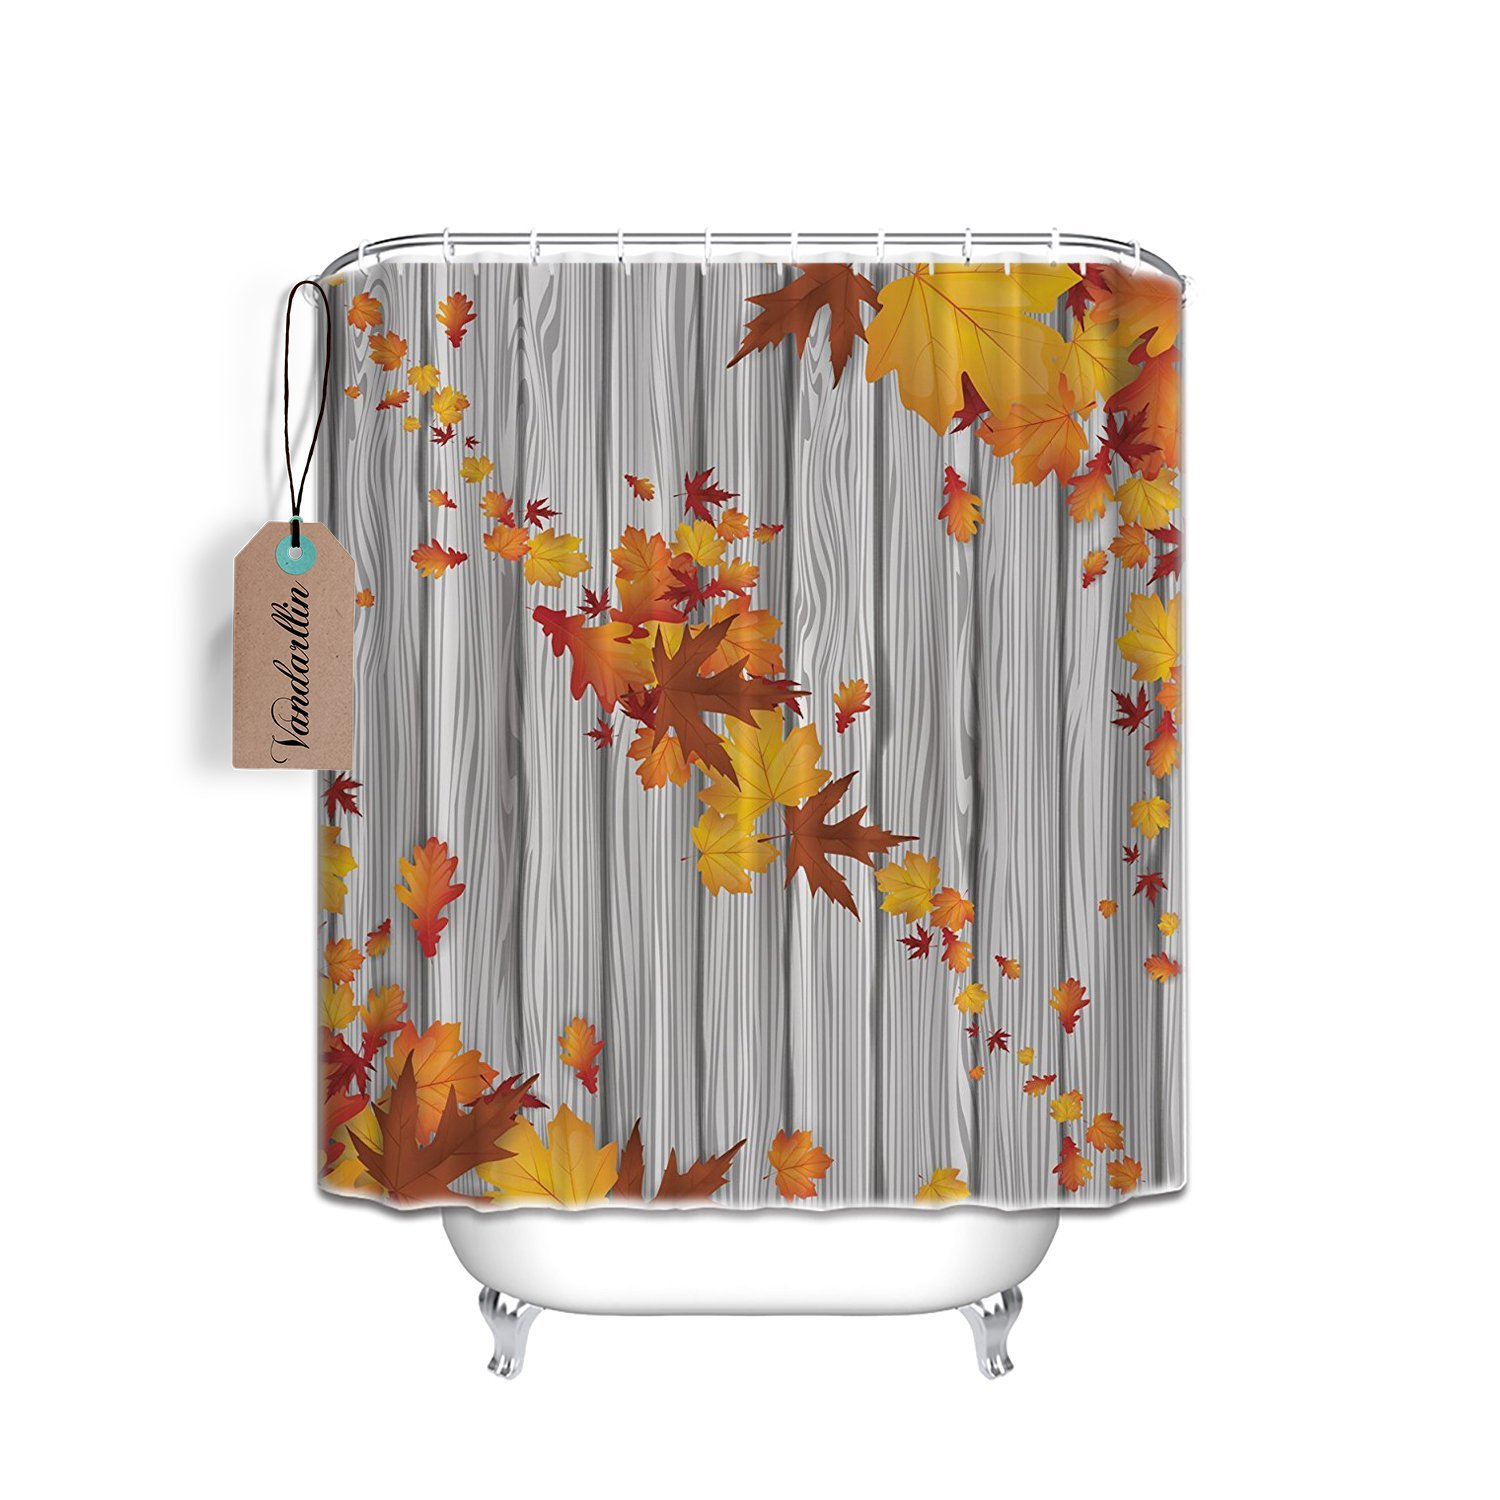 Fall Maple Leaves Rustic Wood Mildew Resistant Fabric Shower Curtain Set 72x84 Extra LongBathroom Accessories